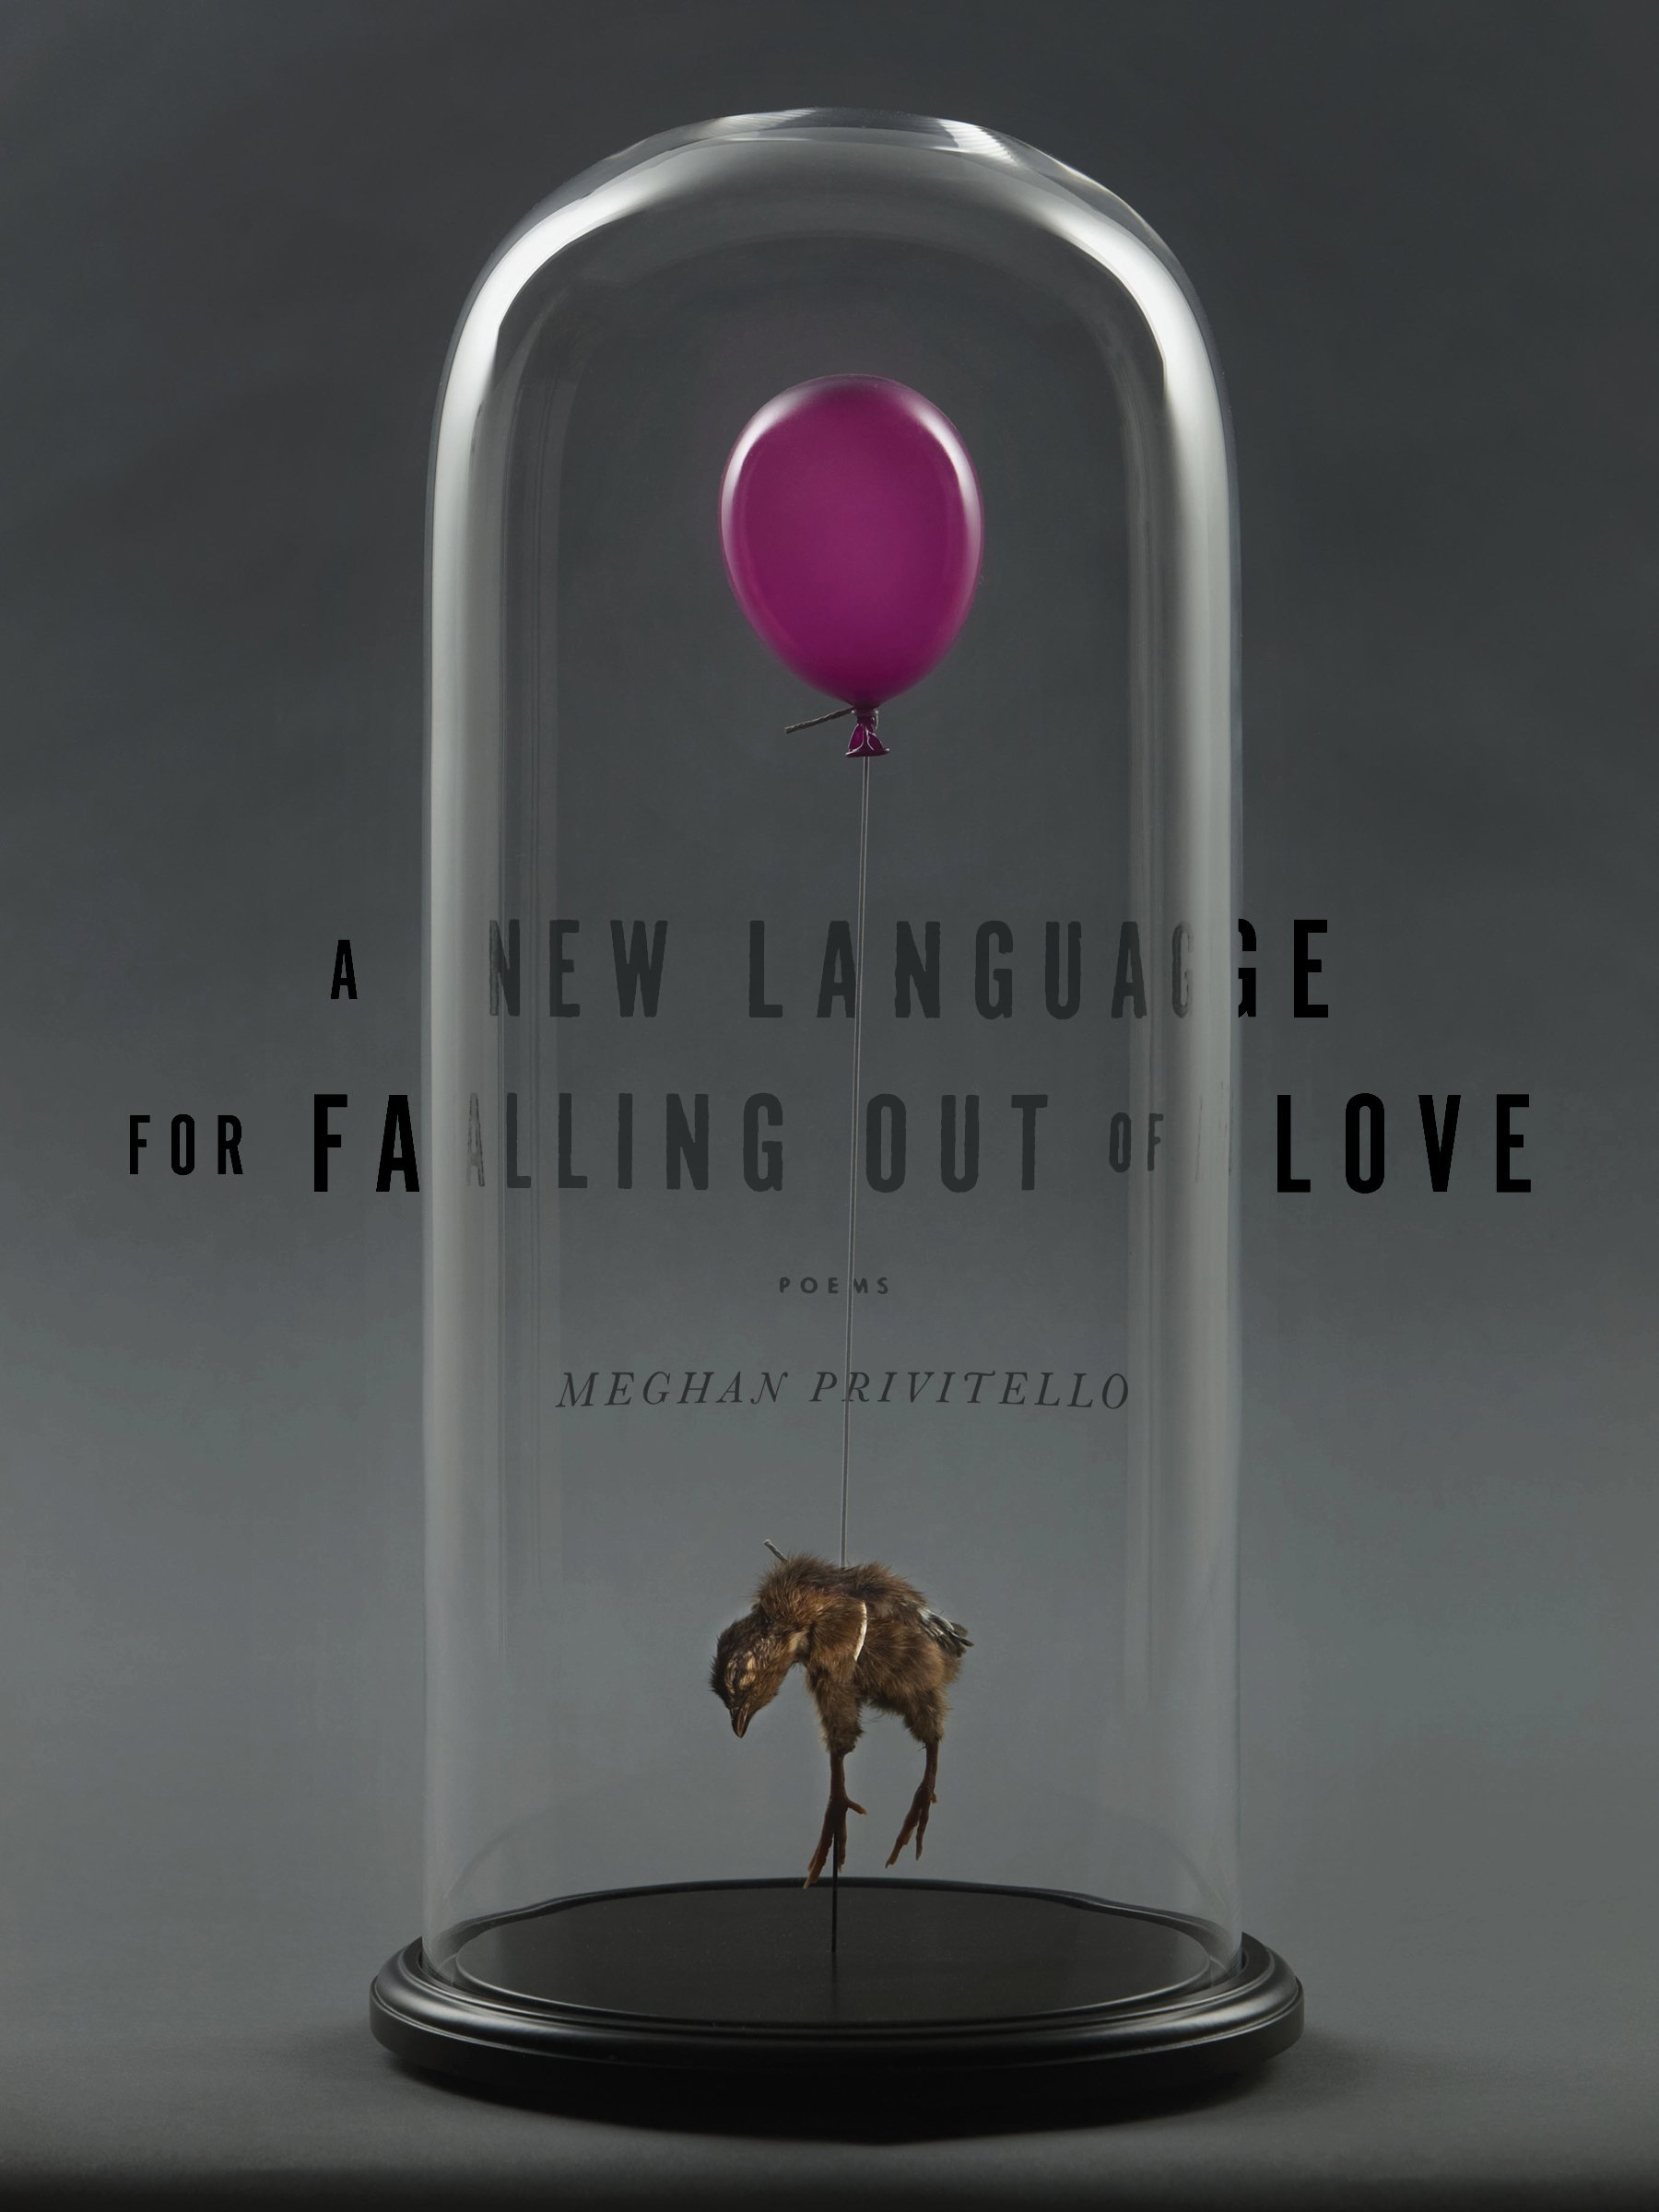 A New Language for Falling Out of Love